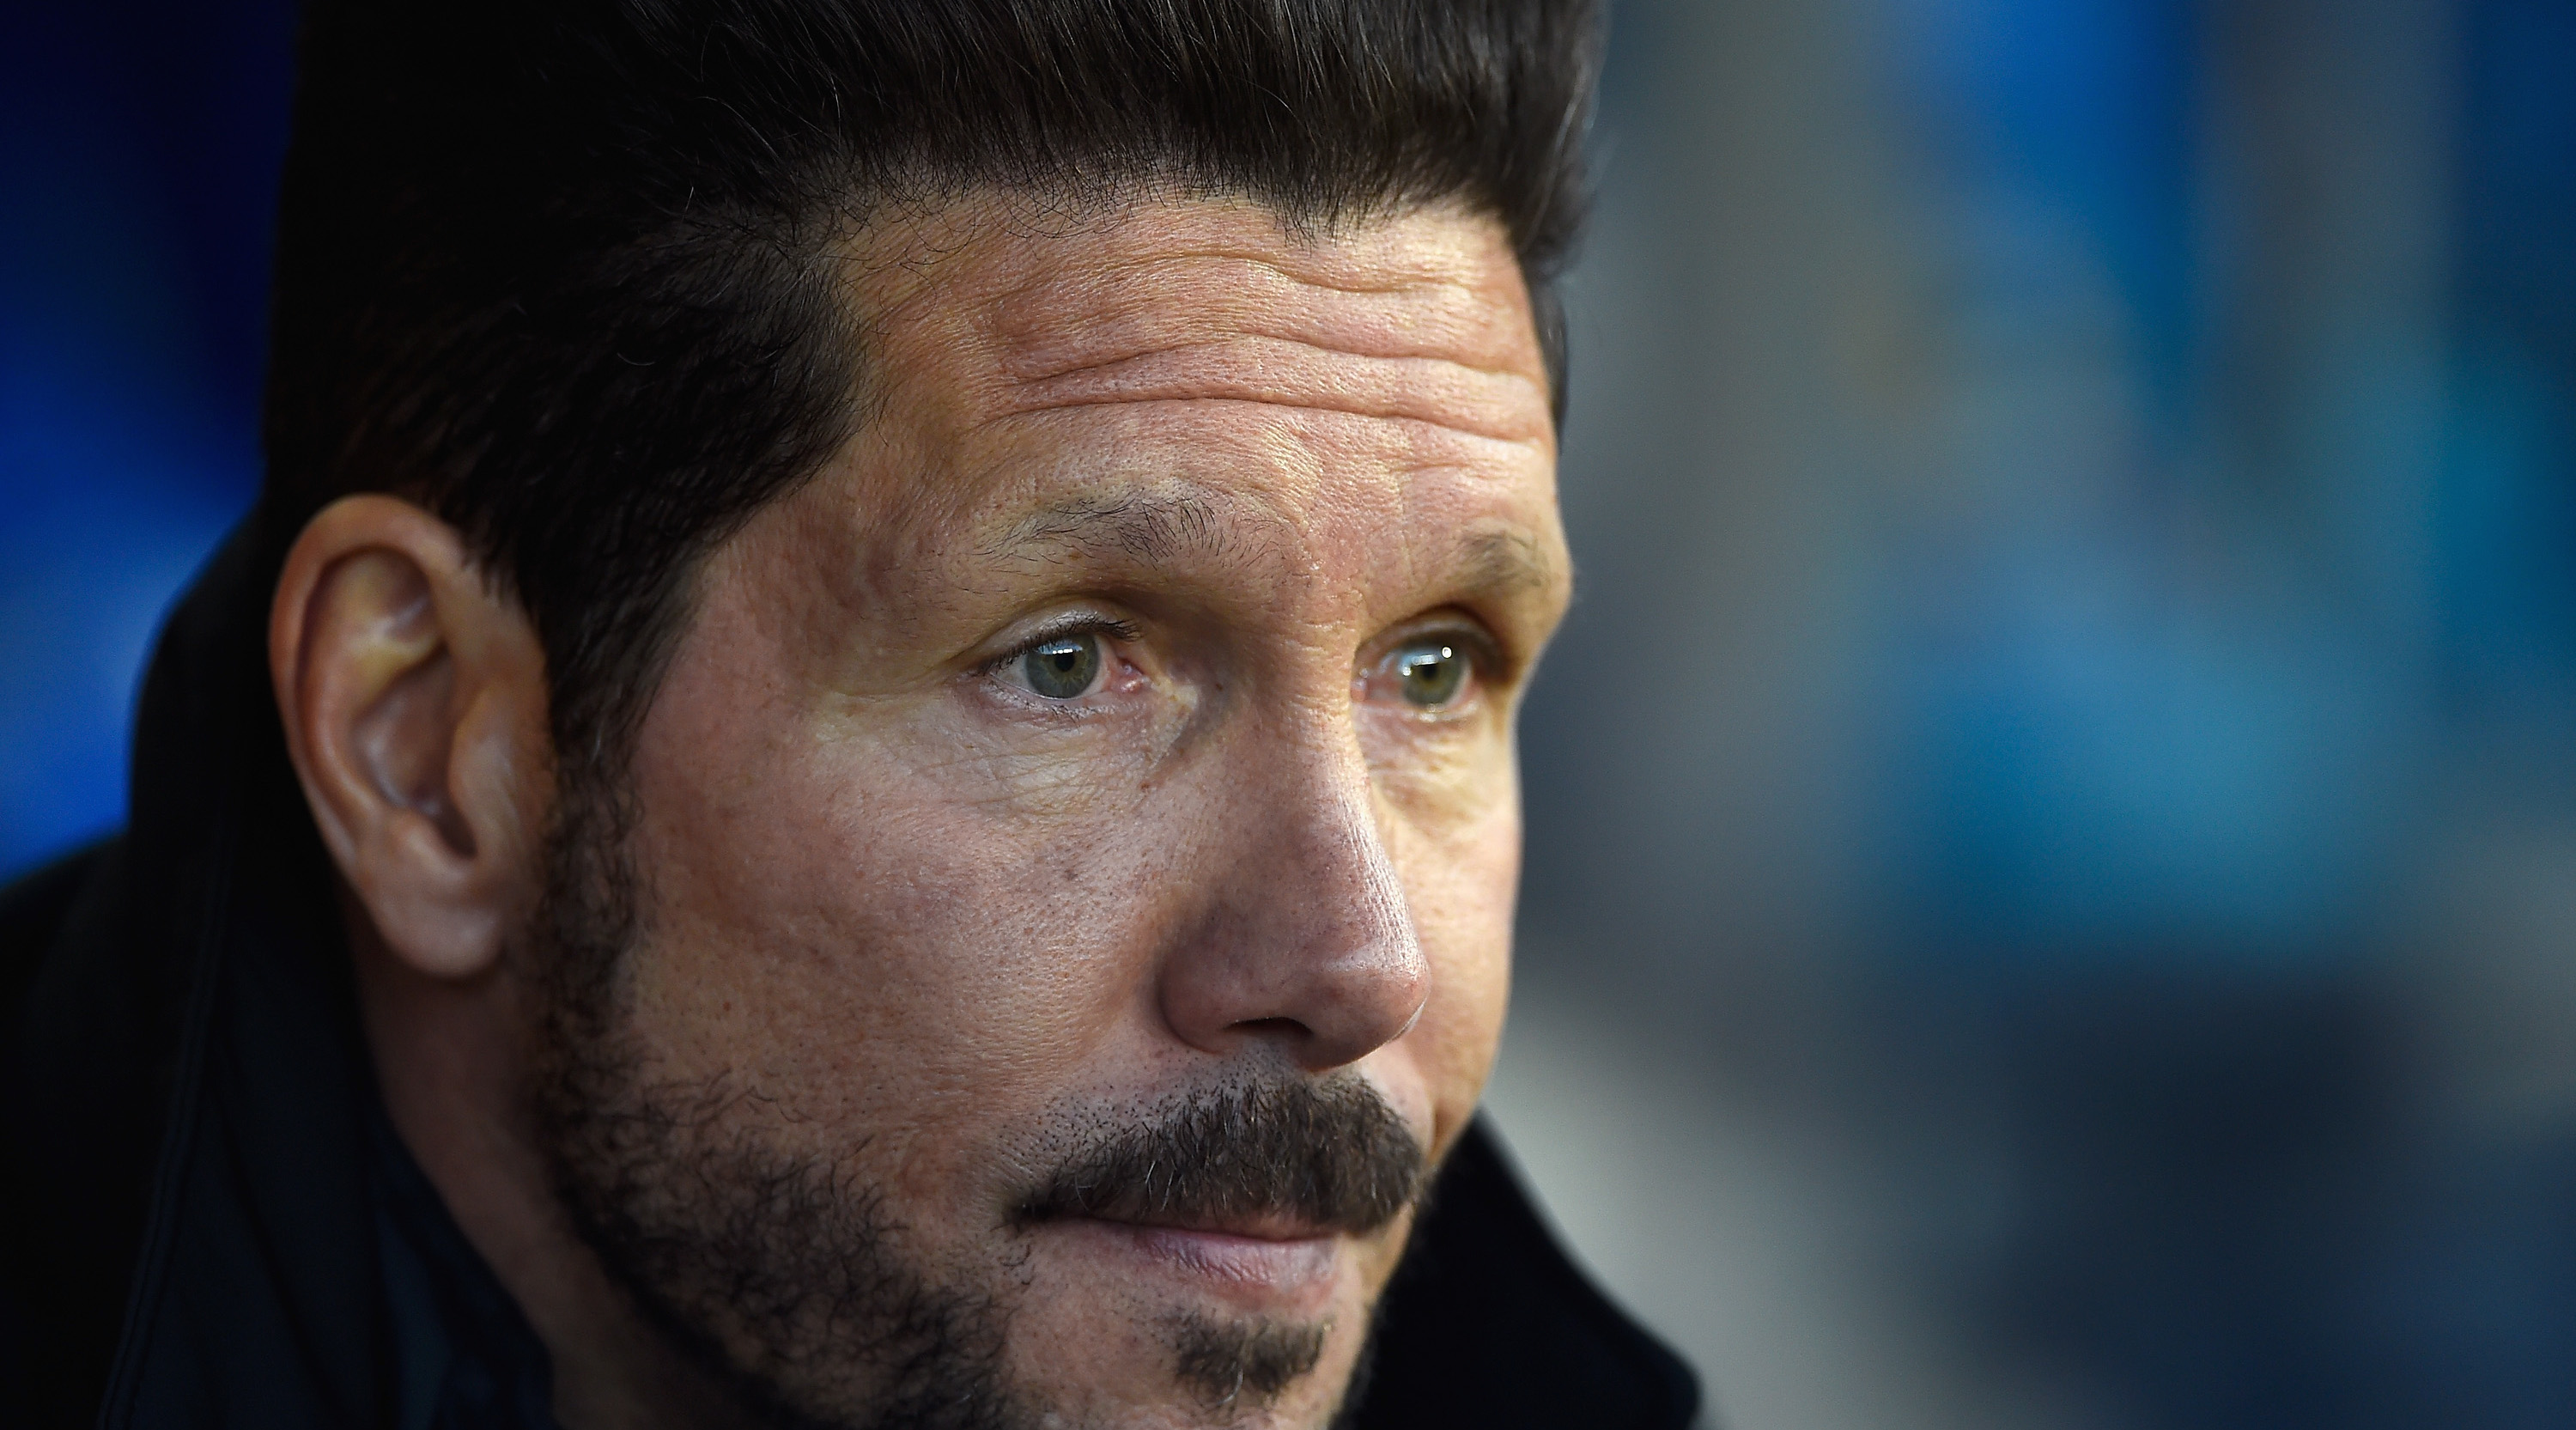 MADRID, SPAIN - APRIL 13: Atletico Madrid coach Diego Simeone looks on during the UEFA Champions League Quarter Final Second Leg between Club Atletico de Madrid and FC Barcelona at Vincente Calderon on April 13, 2016 in Madrid, Spain. (Photo by Mike Hewitt/Getty Images)